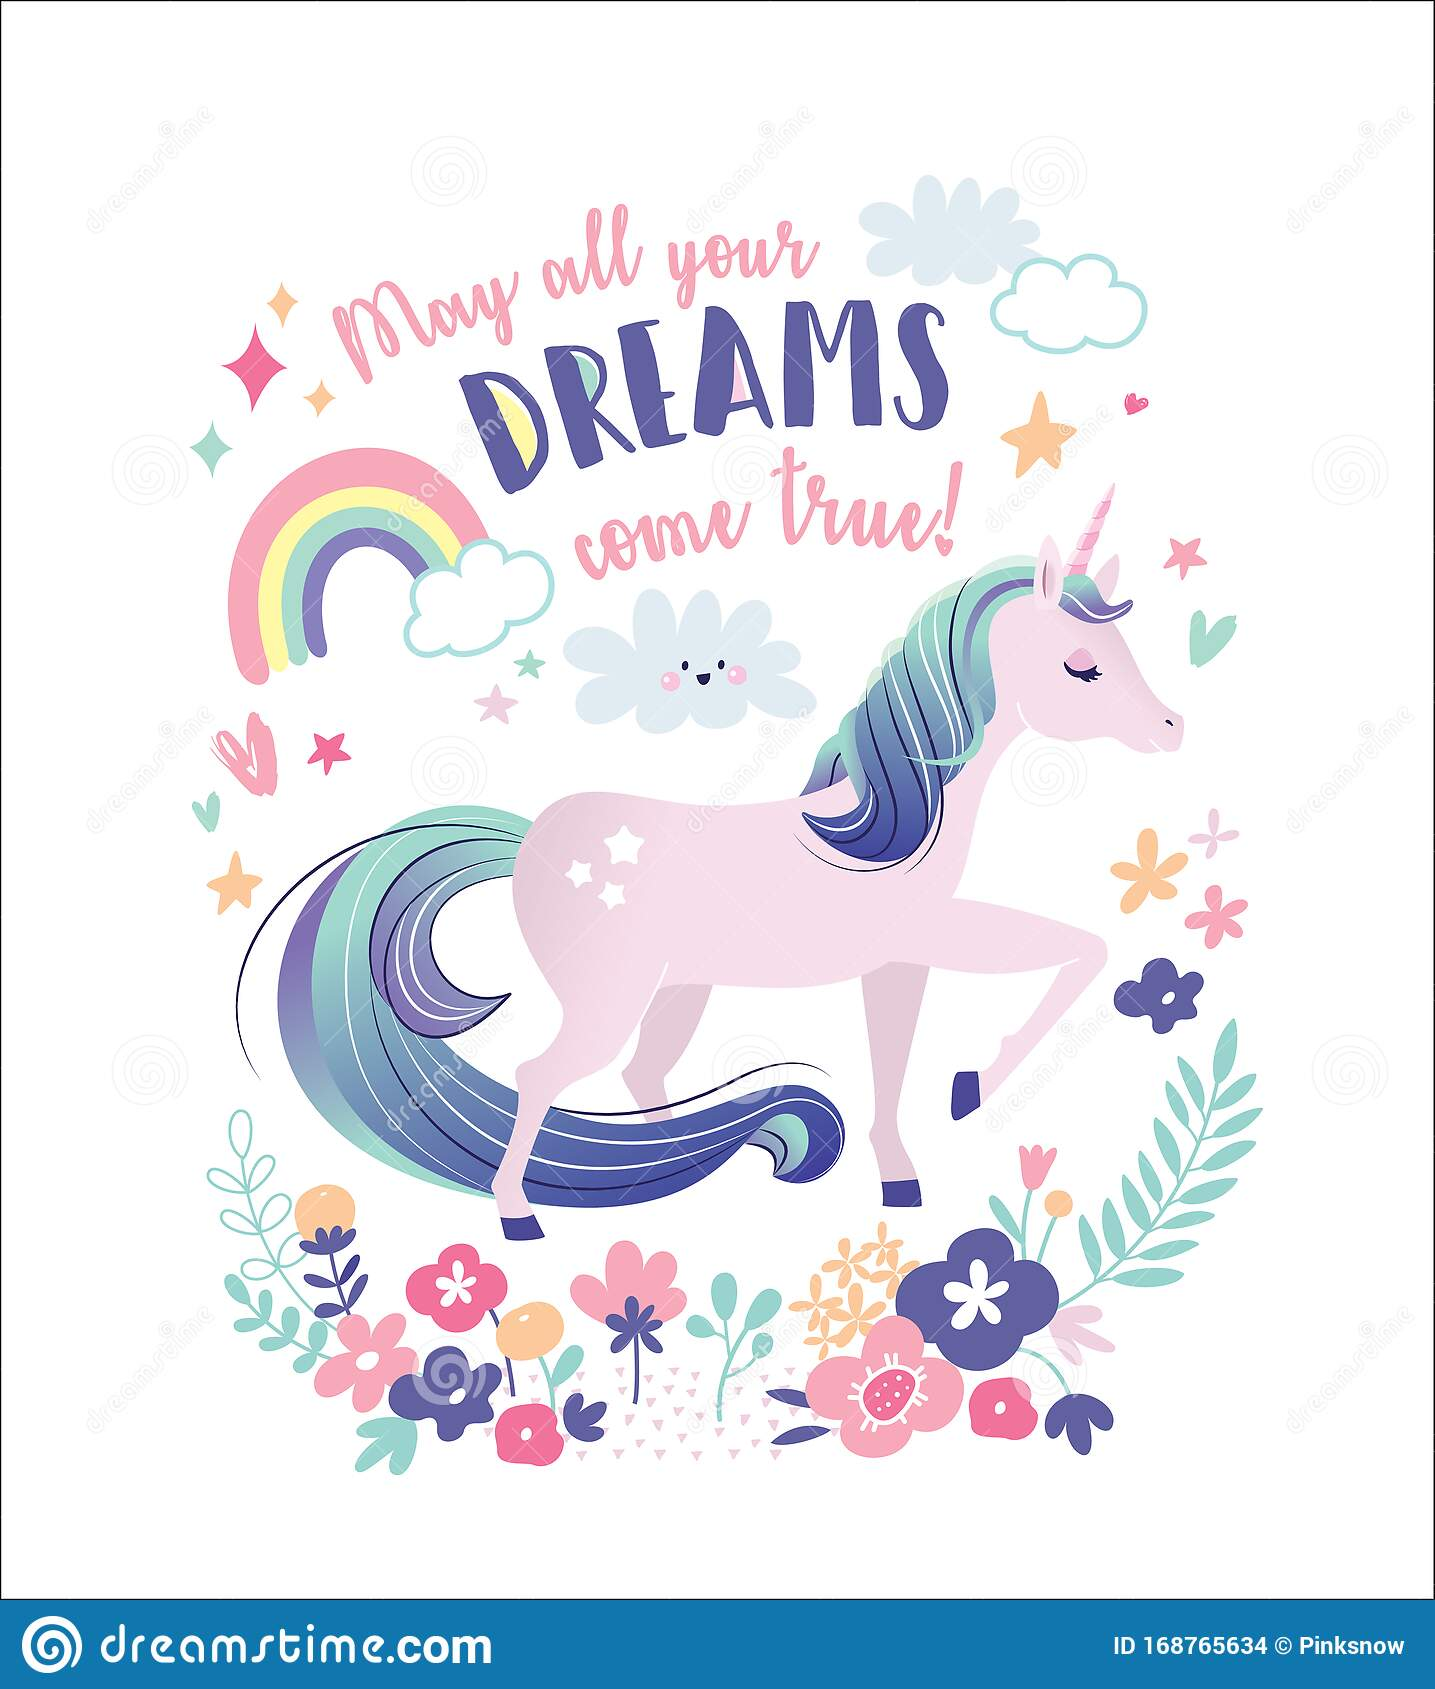 Dream researcher patricia garfield talks about dreams and dreaming. May All Your Dreams Come True Stock Vector Illustration Of Believe Heart 168765634